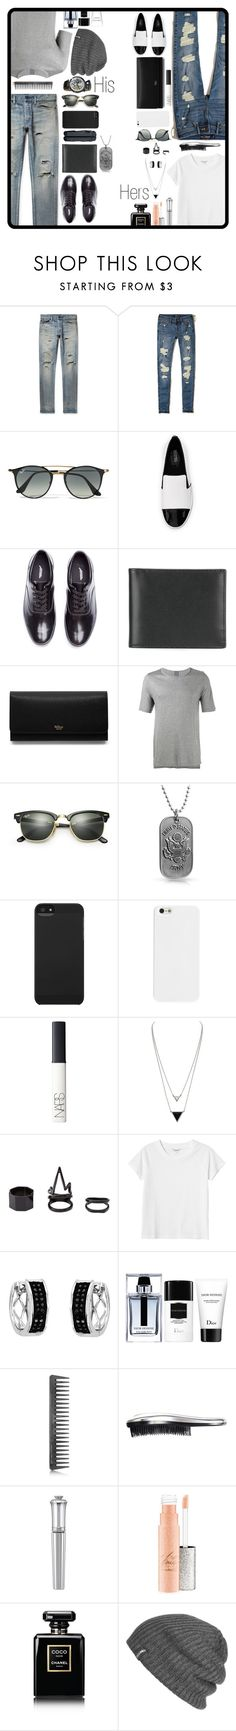 """His and Hers"" by darksyngr ❤ liked on Polyvore featuring John Elliott, Corum, Hollister Co., Ray-Ban, MICHAEL Michael Kors, Undercover, Ettinger, Mulberry, Lot78 and Bling Jewelry"